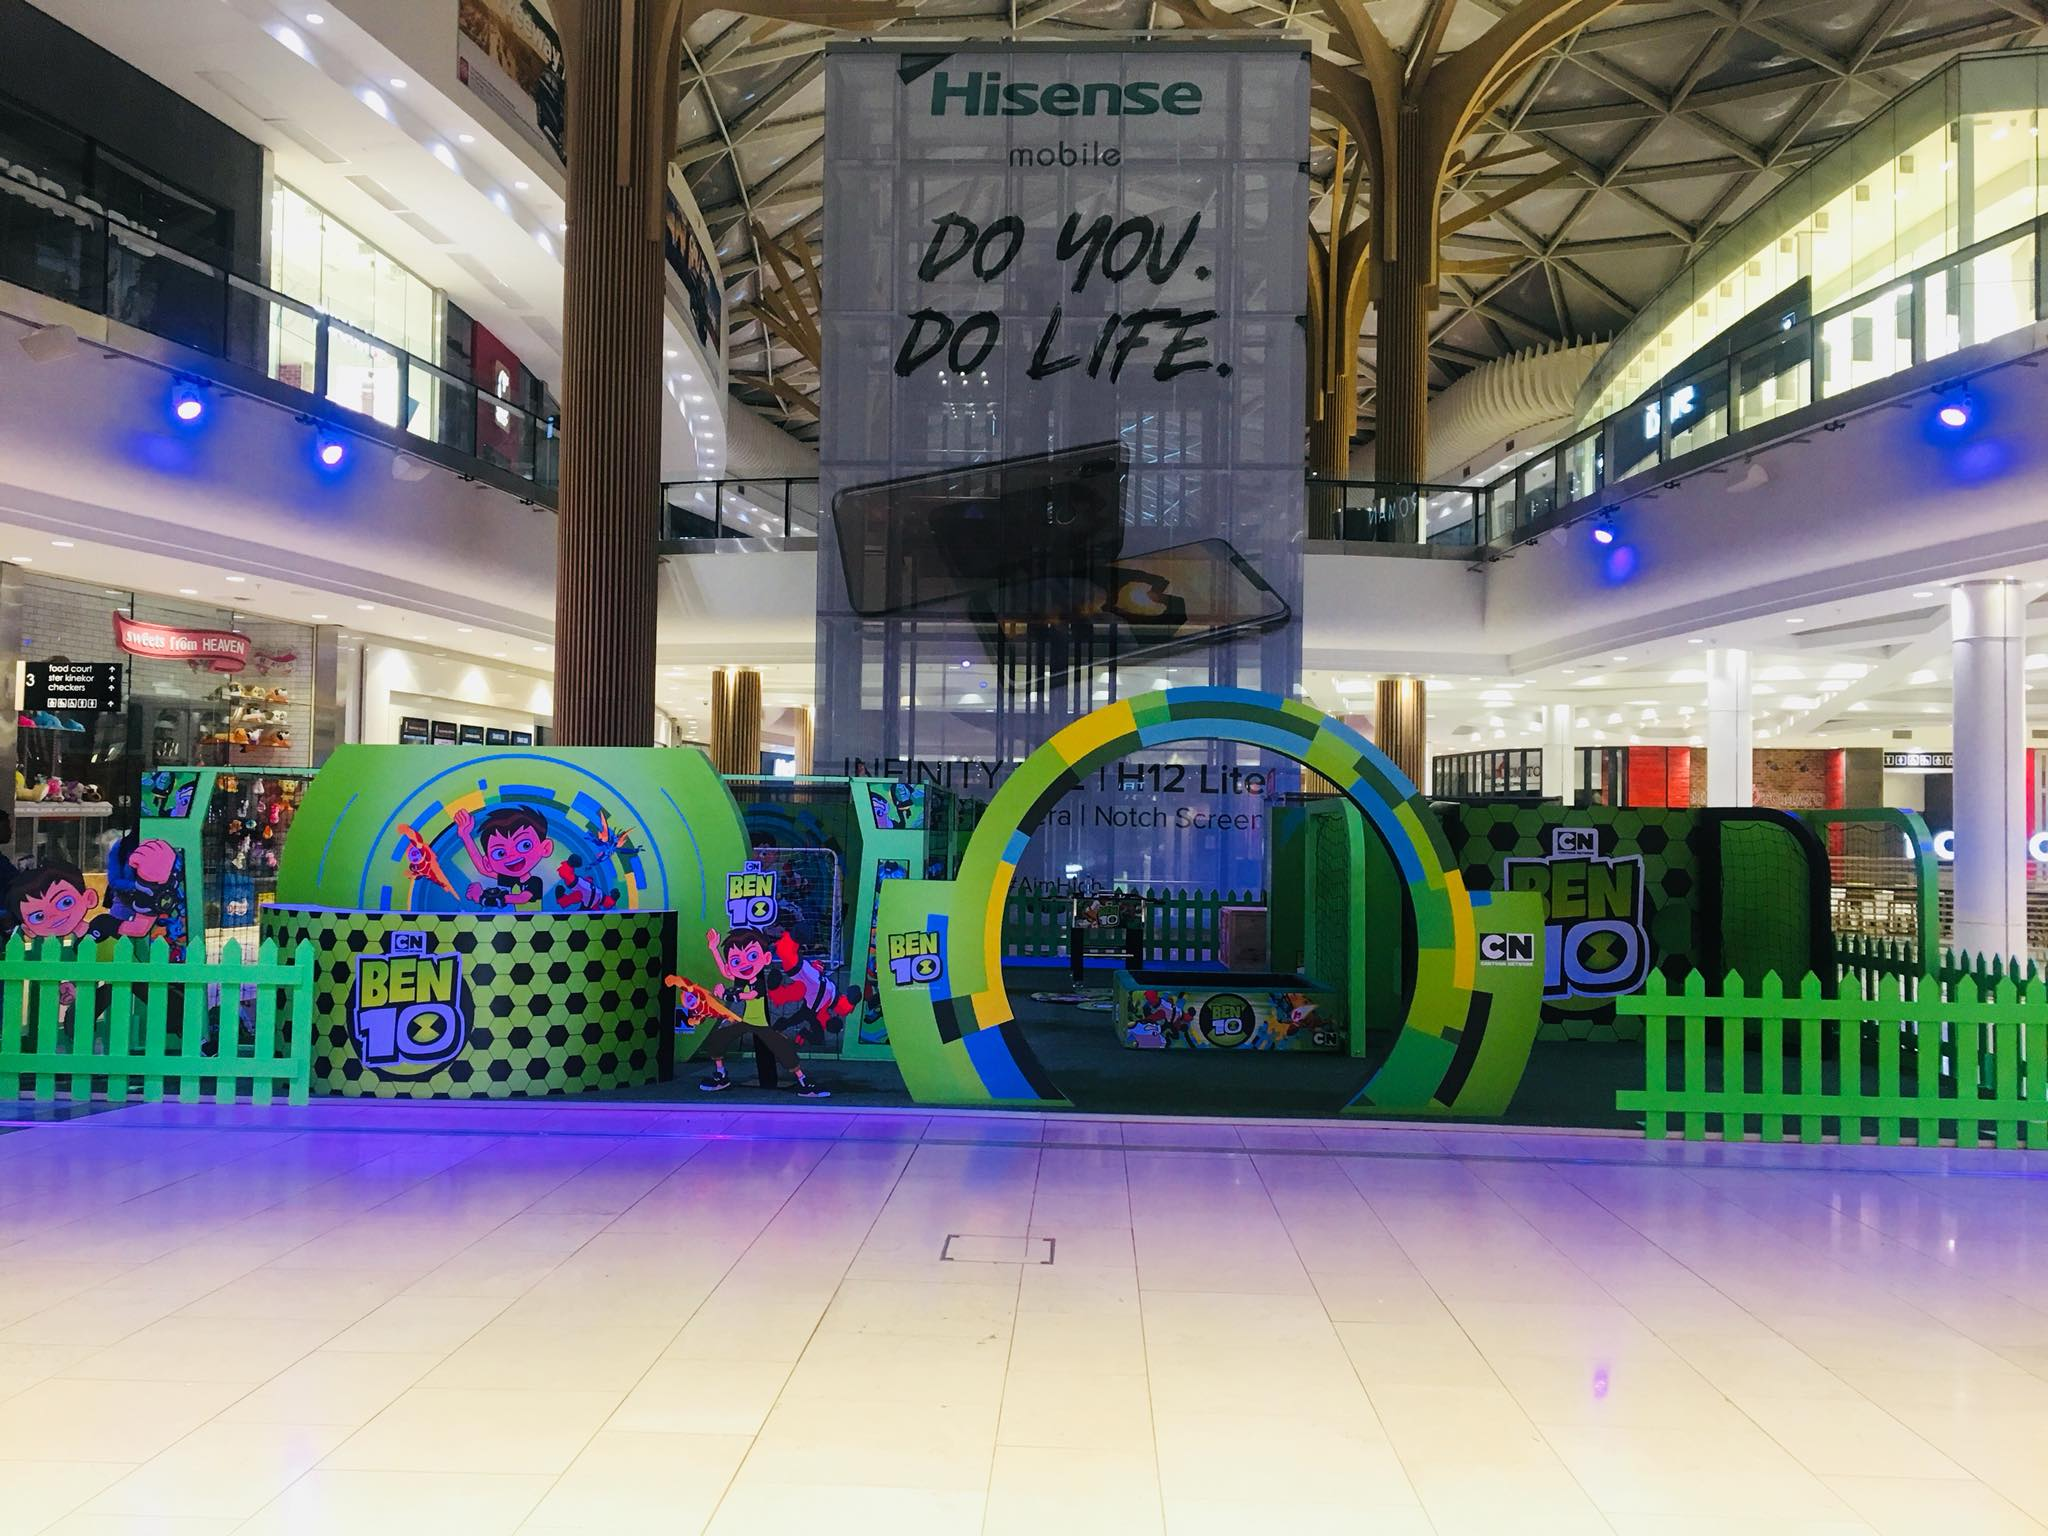 HDI Youth Consultancy for the second year, entrusted Umtunzi Exhibitions to design, manufacture and roll out the 2018 Ben 10 mall activations.